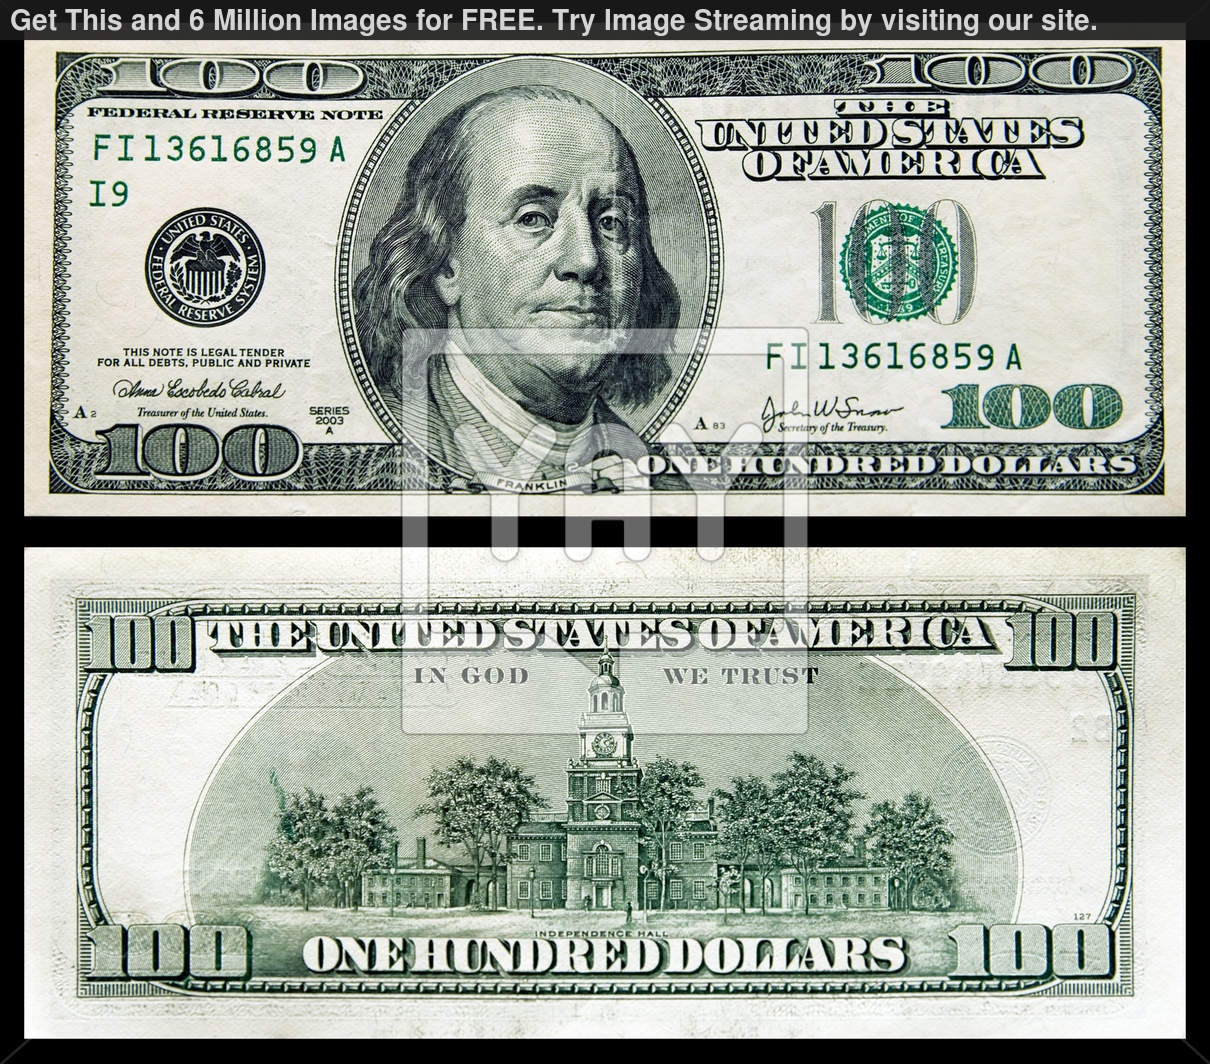 Printable Dollar Bill Template | Camisonline - Free Printable Million Dollar Bill